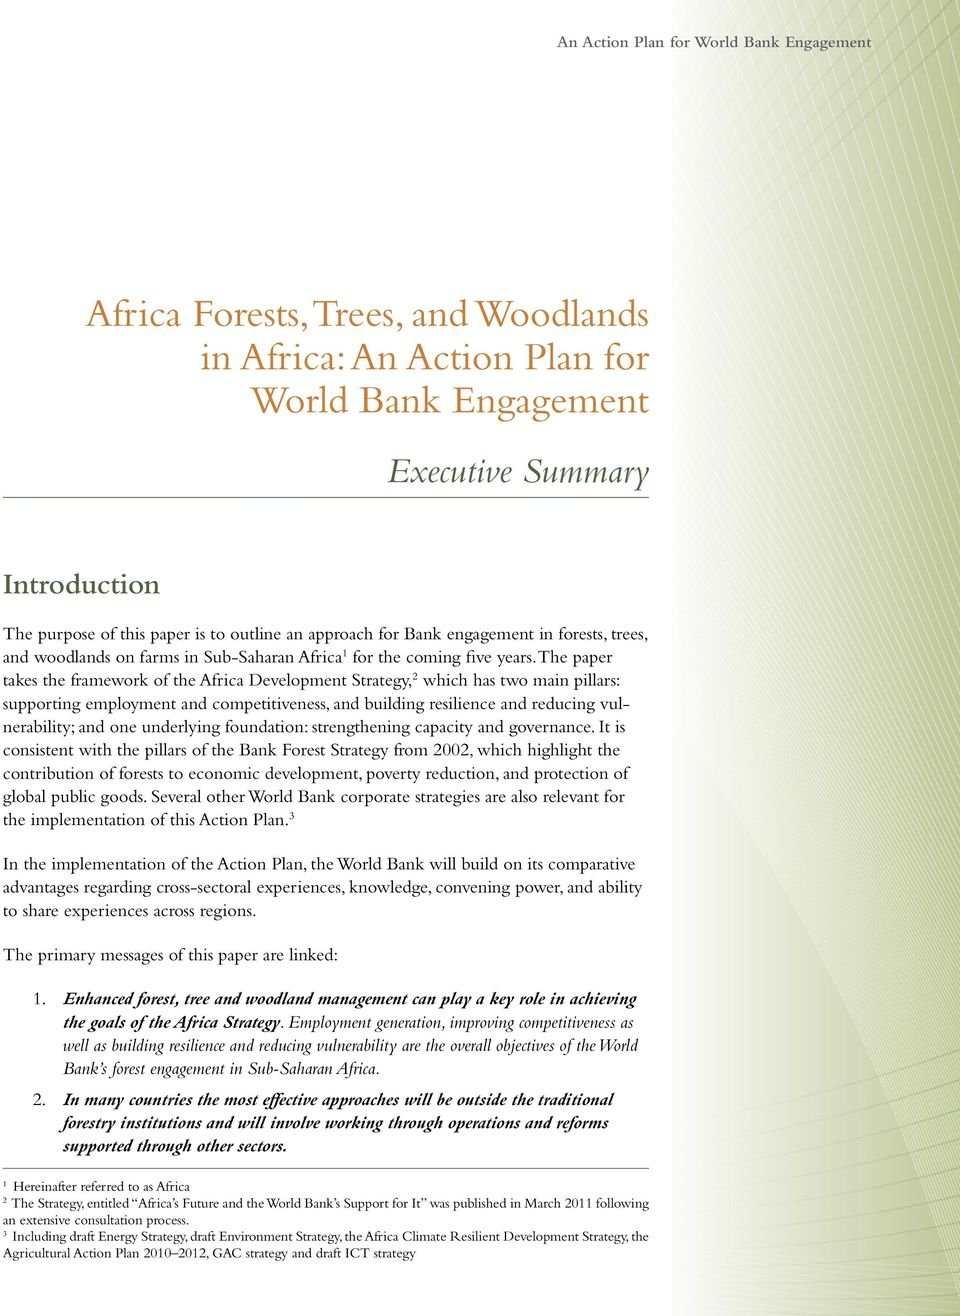 The paper takes the framework of the Africa Development Strategy, 2 which has two main pillars: supporting employment and competitiveness, and building resilience and reducing vulnerability; and one